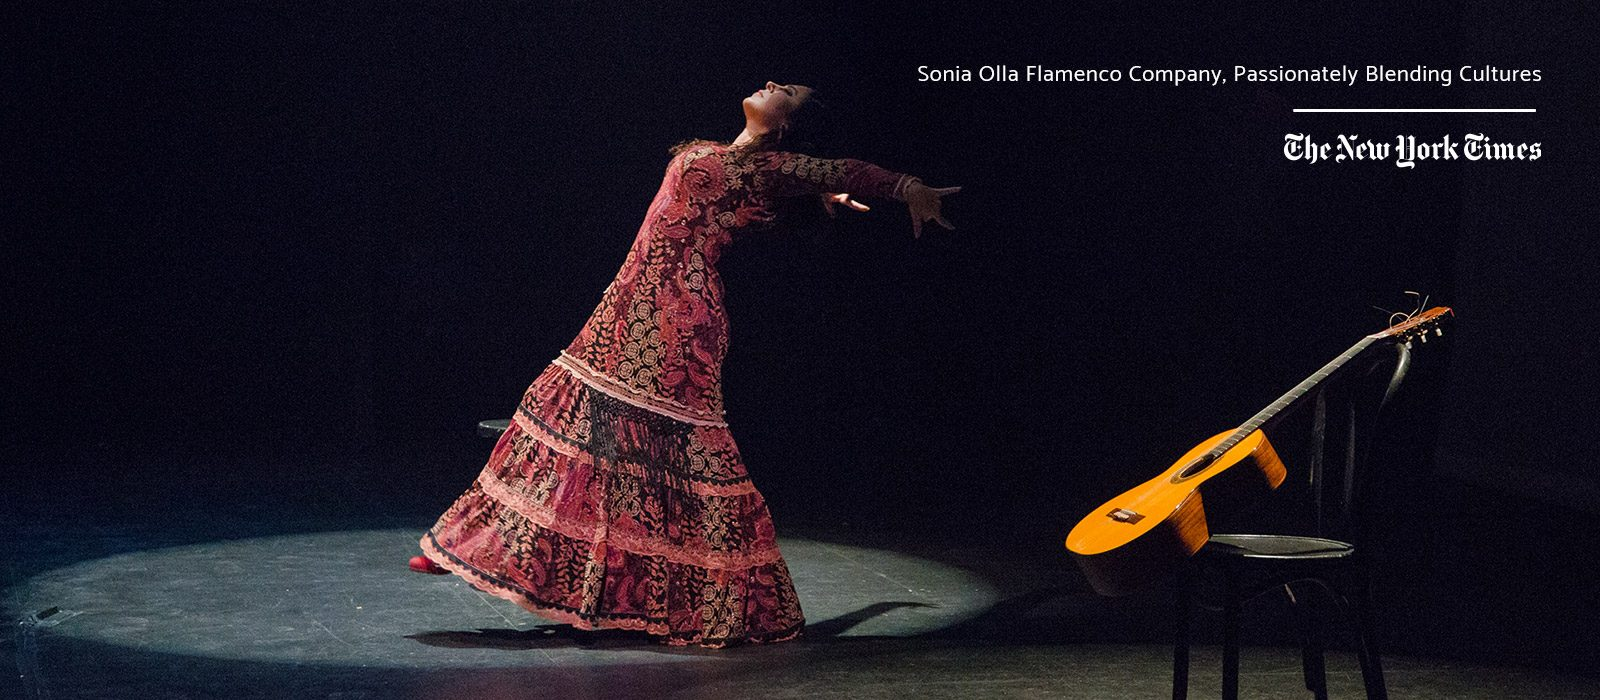 Sonia Olla Flamenco Company - The New York Times